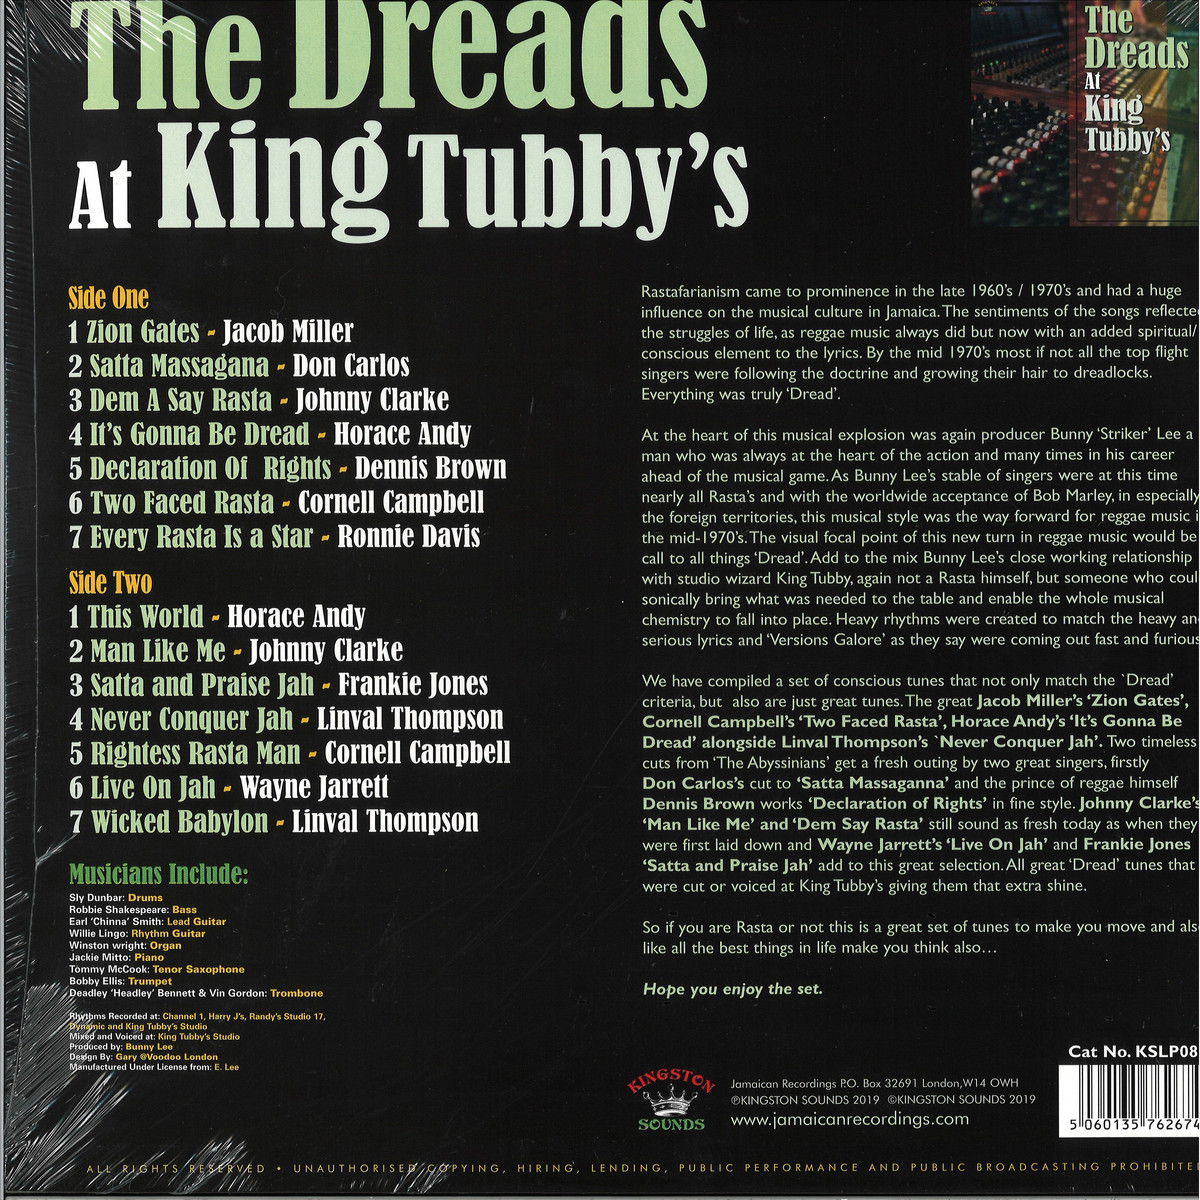 Various Artists - The Dreads At King Tubby's / Kingston Sounds